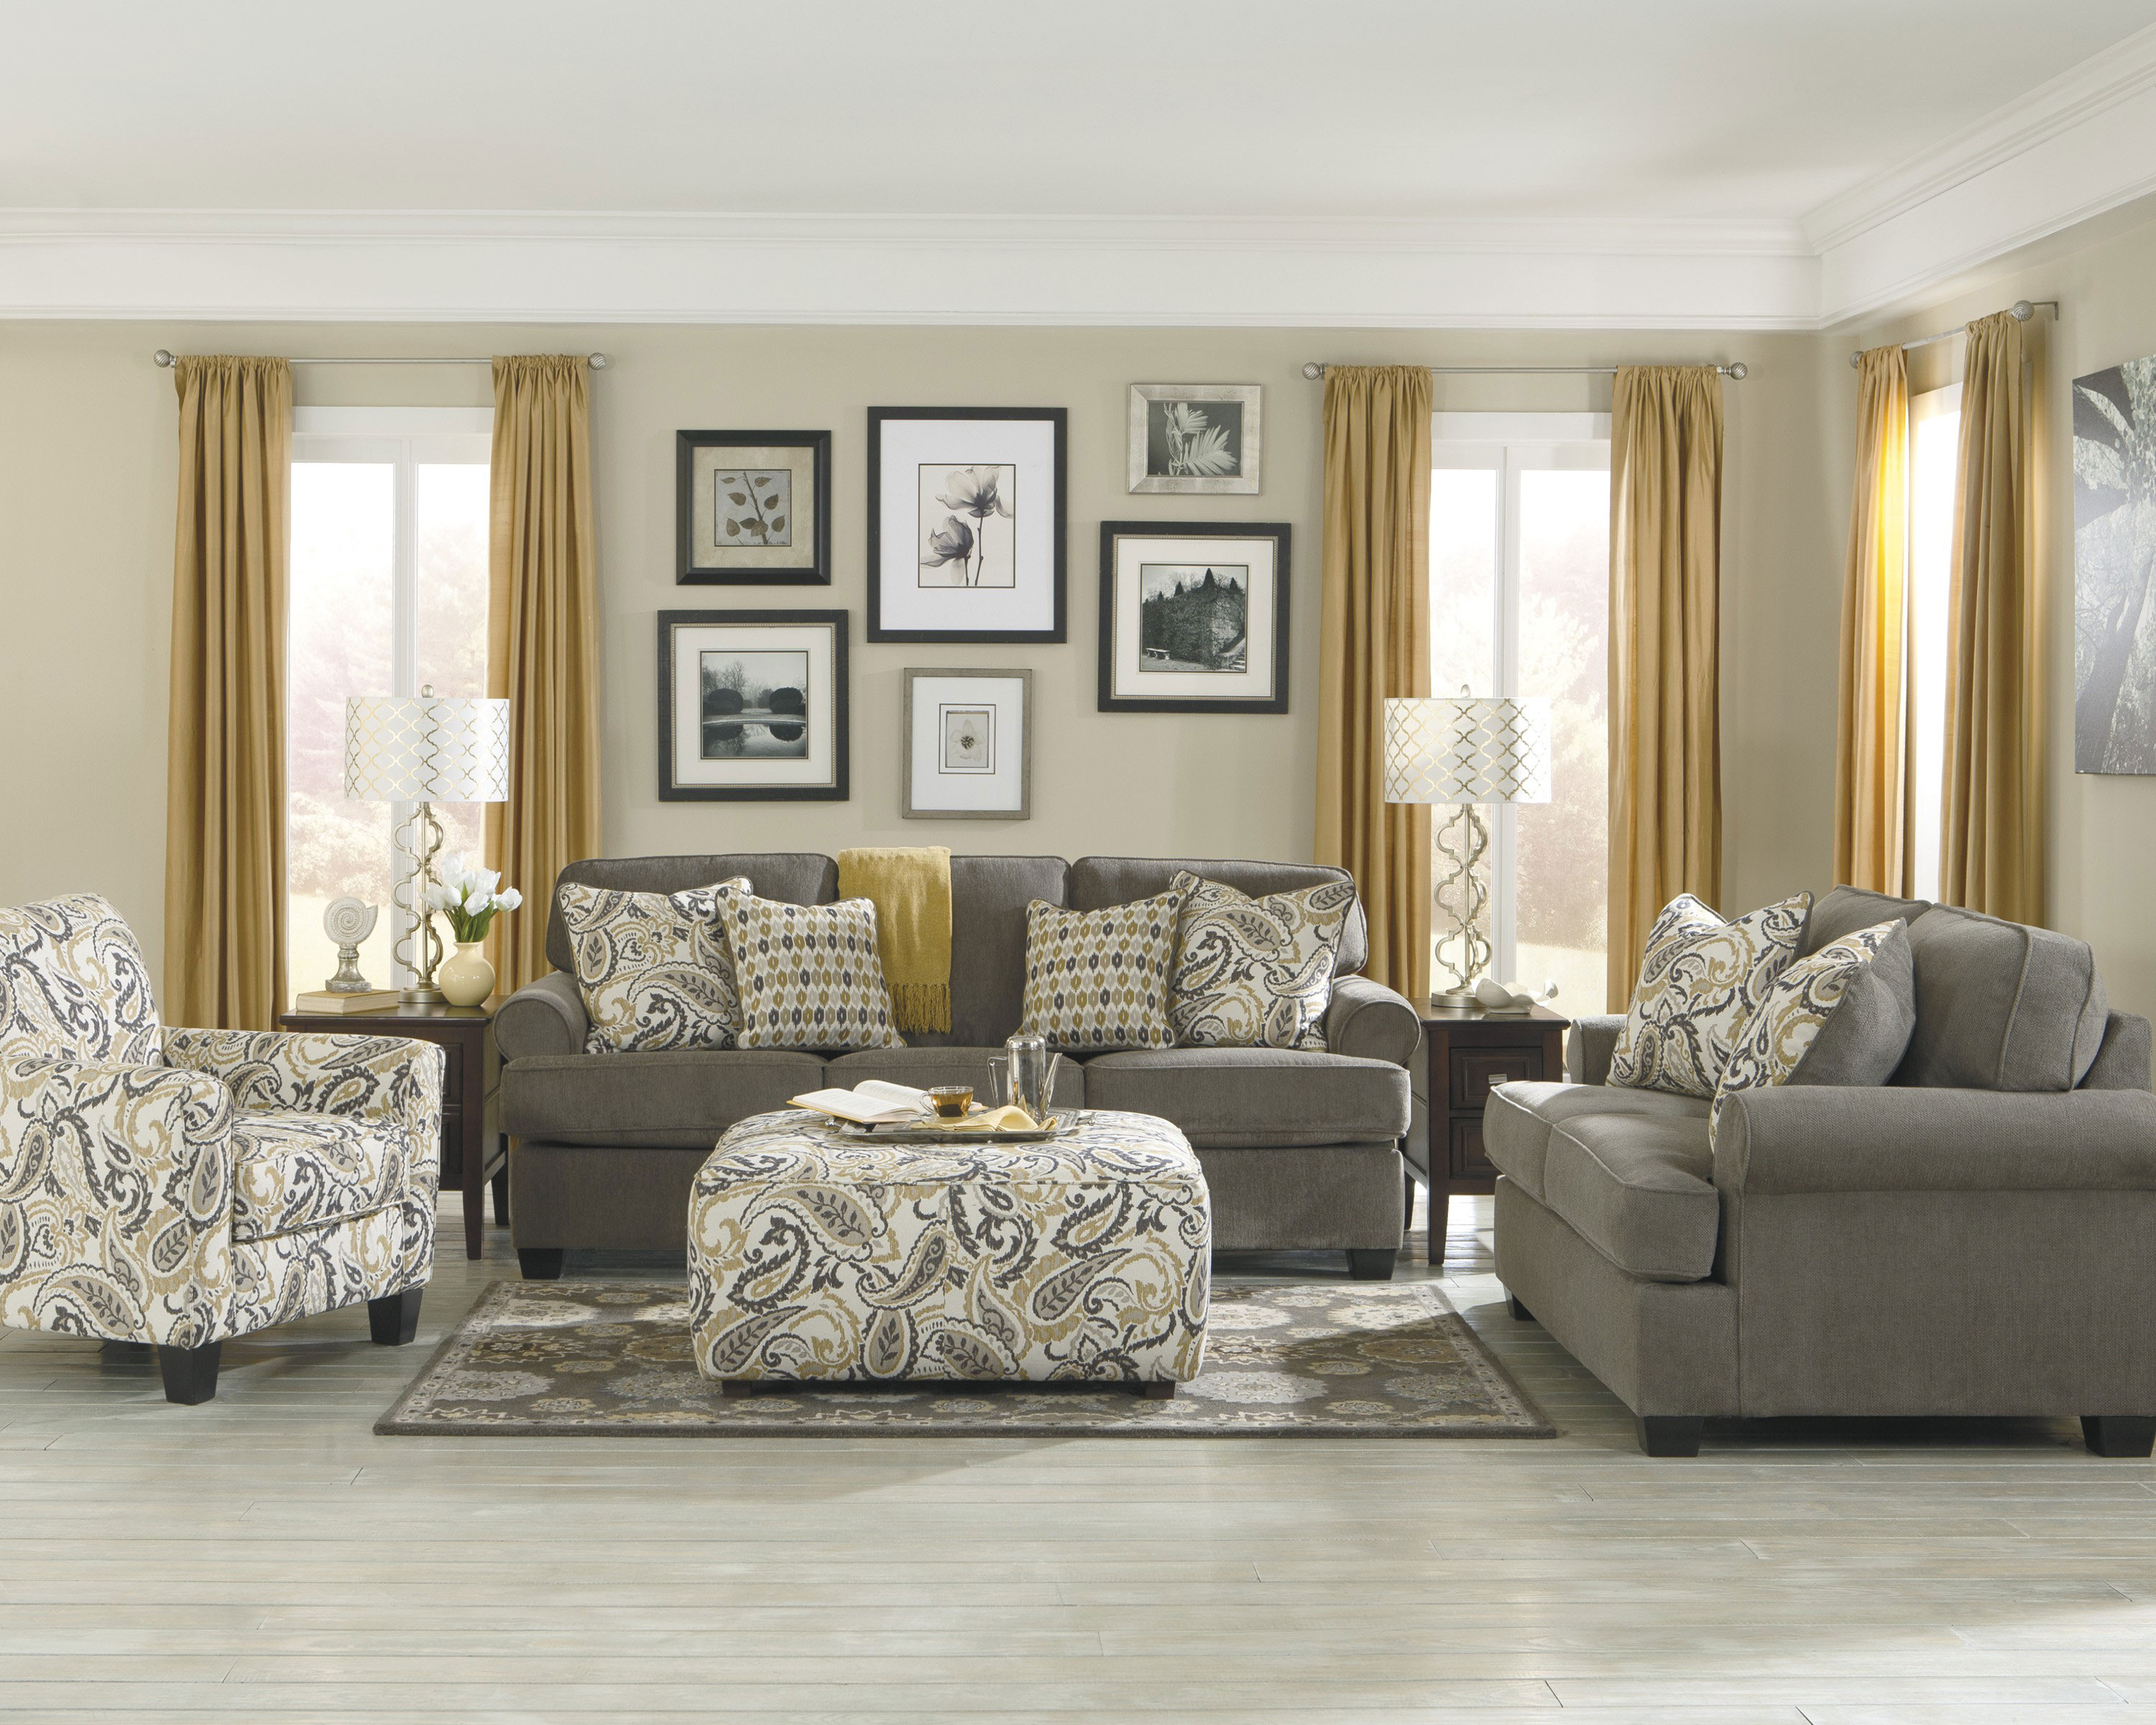 Living Room Aarons Living Room Sets For Cool Your Home Design inside Living Room Sets For Sale In Houston Tx